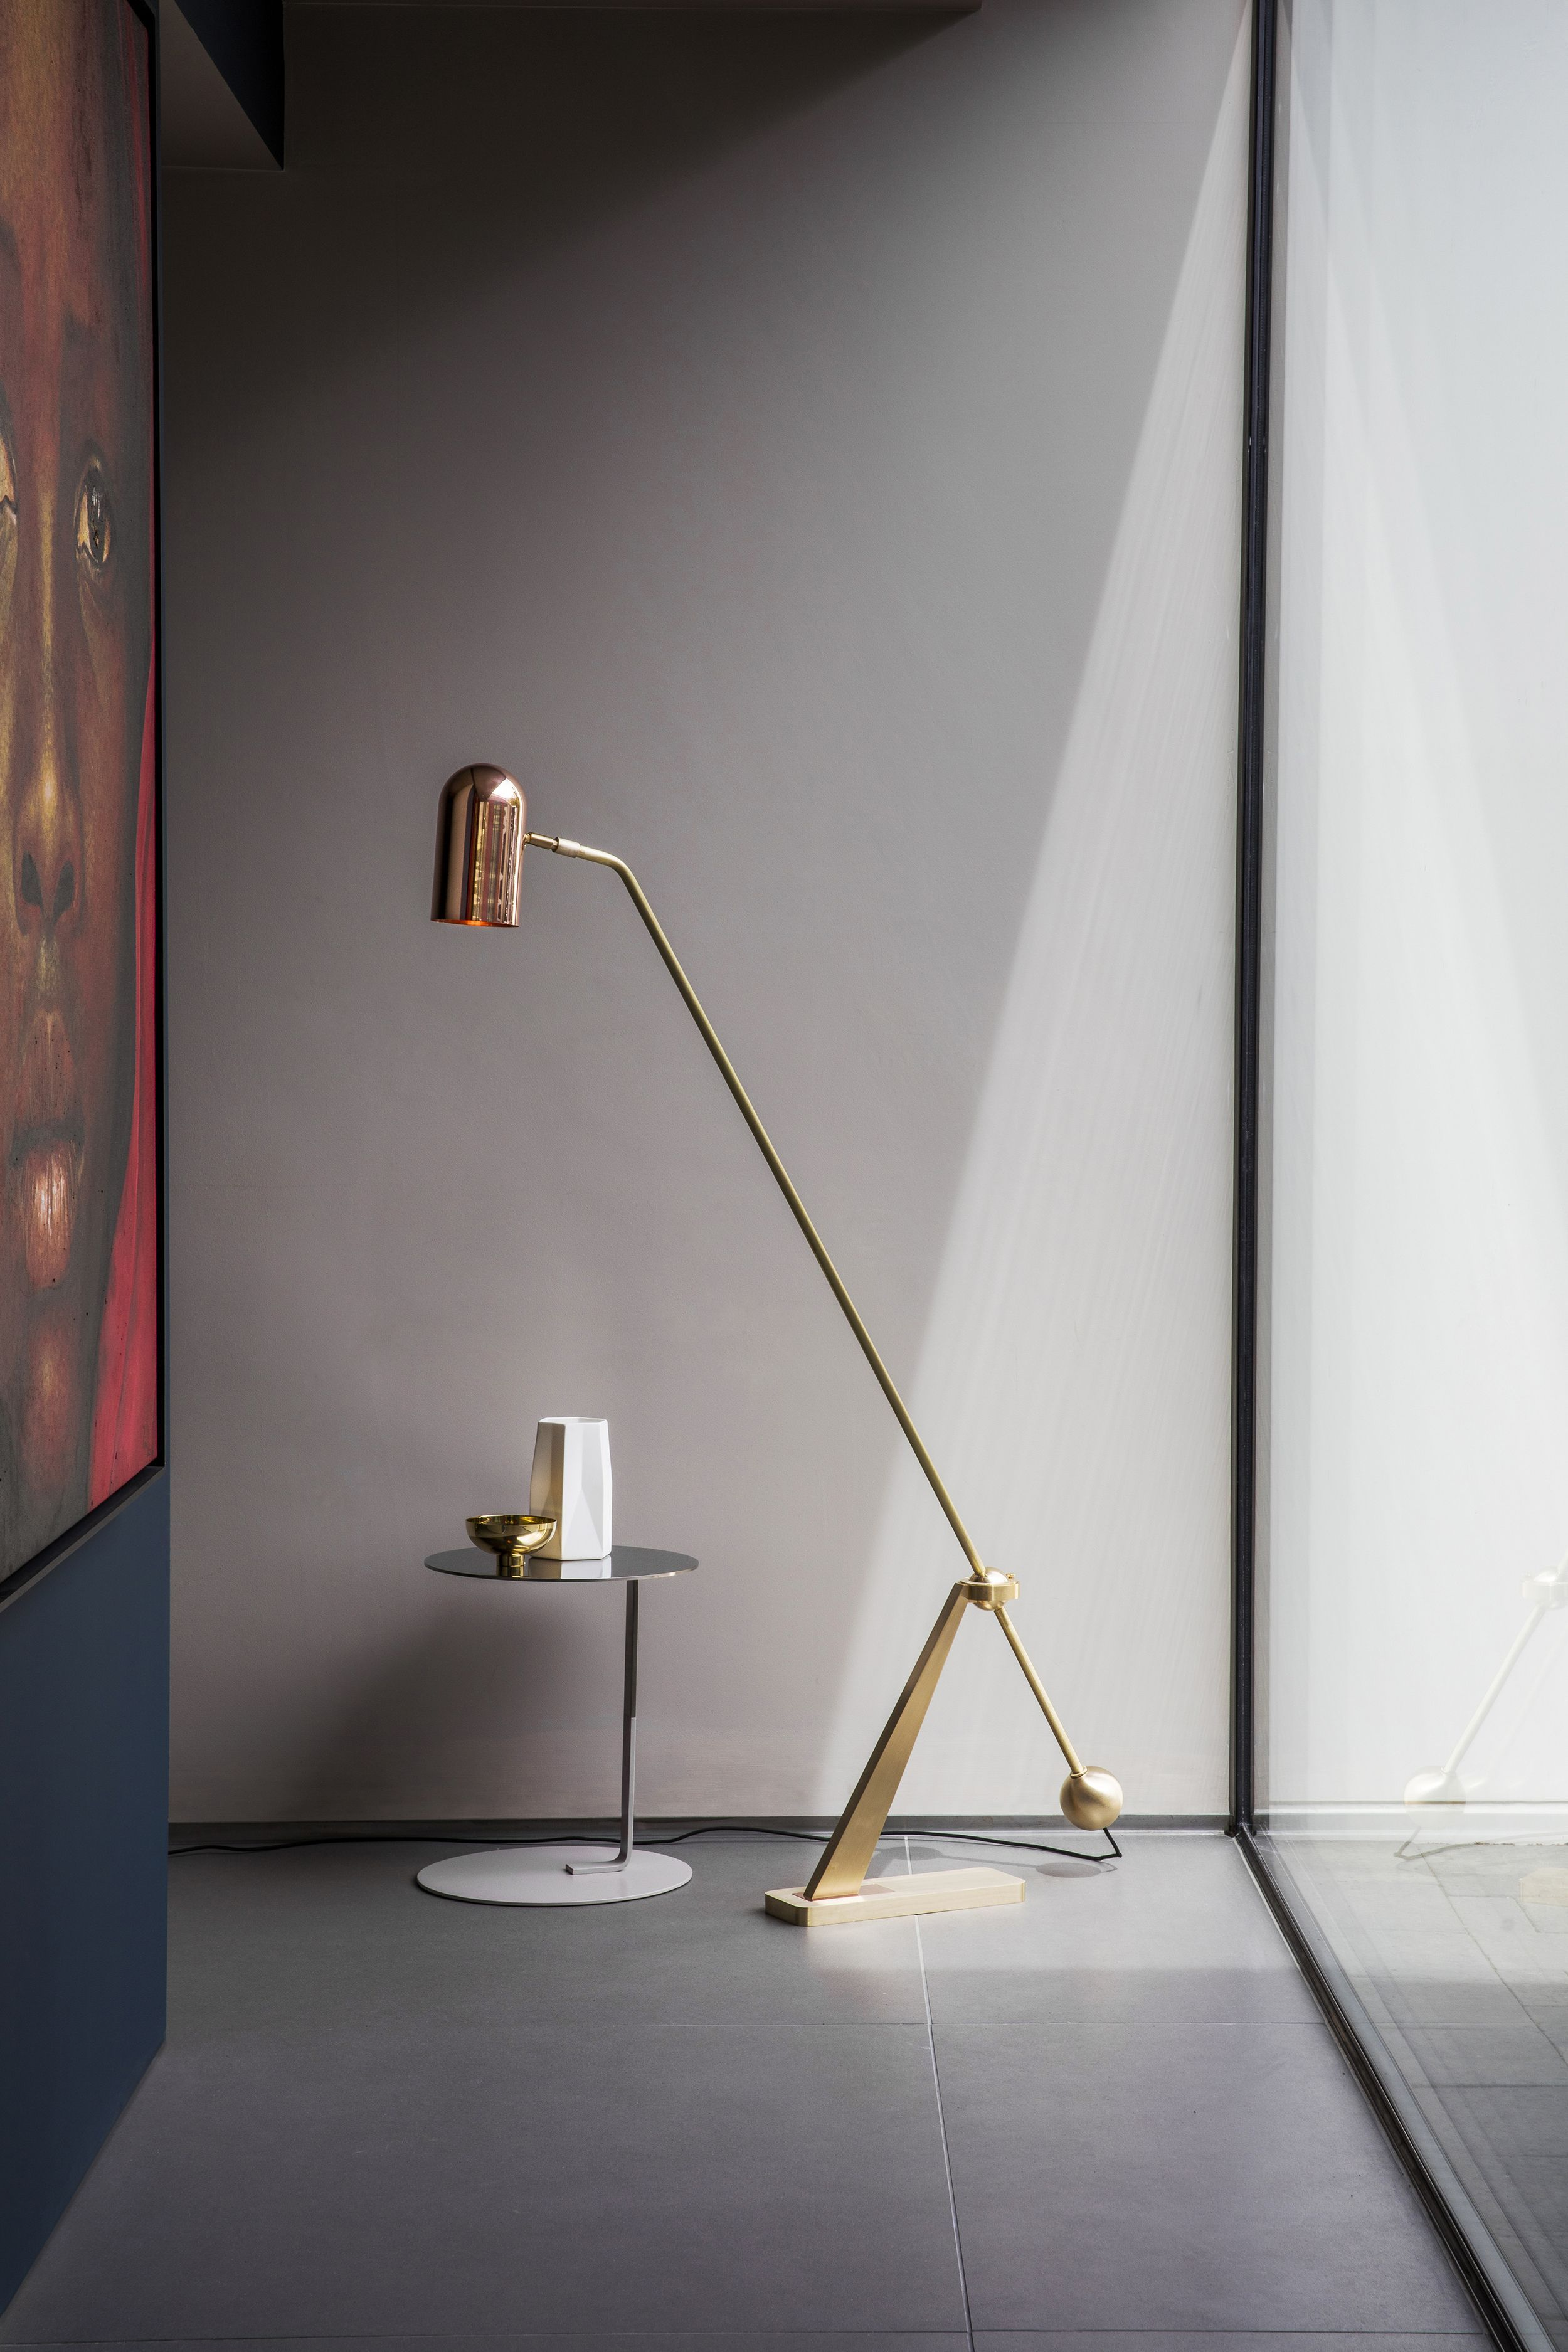 Decor Like A Pro With These Modern Floor Lamps That Fit Your Living Room Design You Ve Been Dreaming Beautiful Floor Lamps Contemporary Floor Lamps Floor Lamp